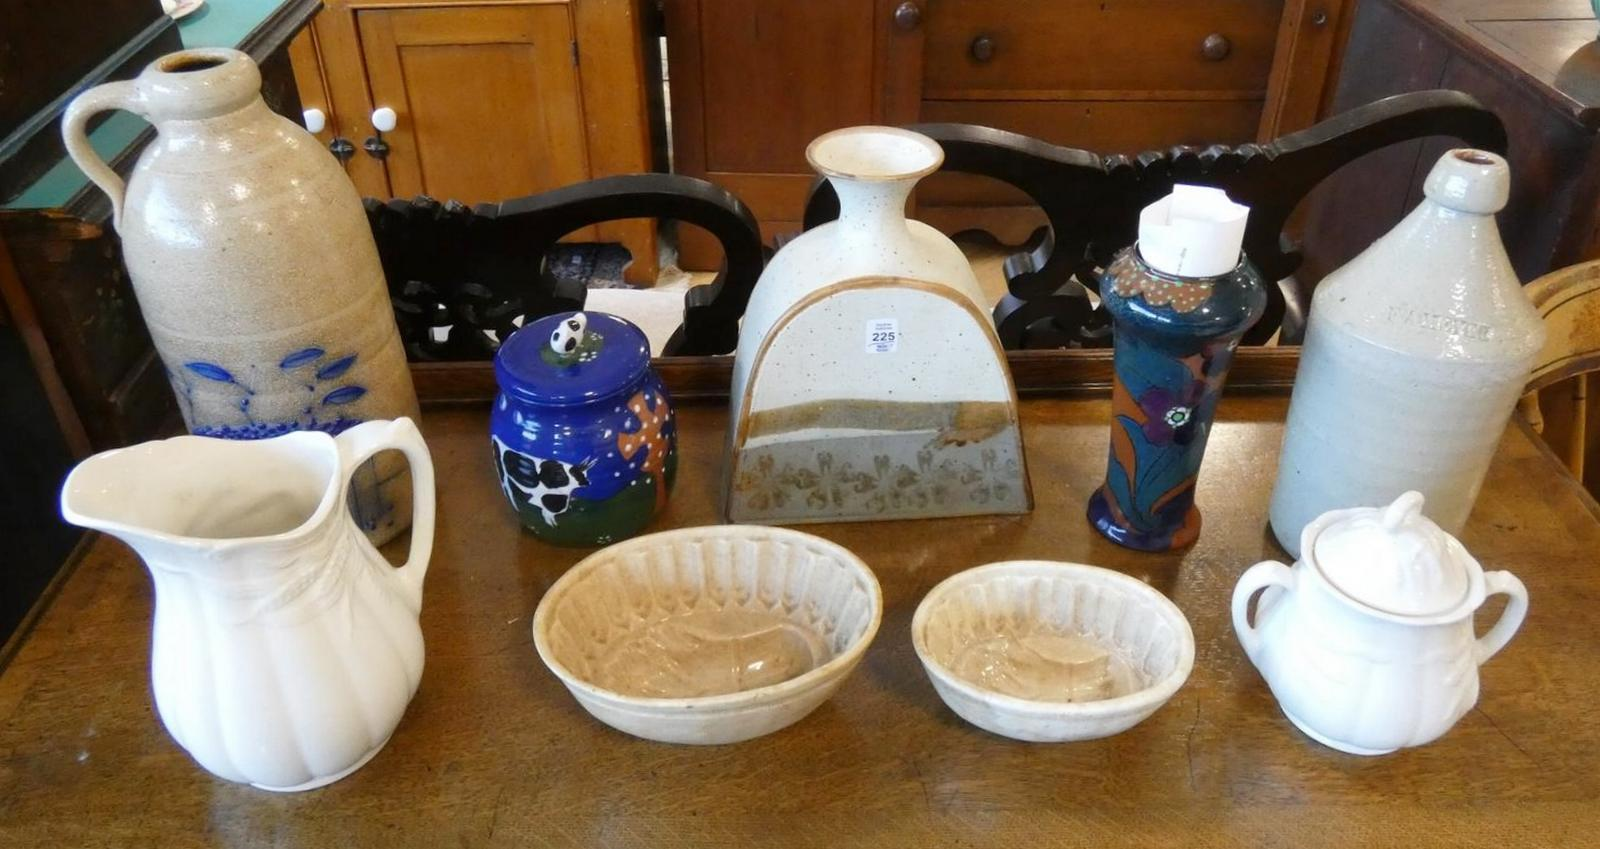 NINE PIECES OF POTTERY